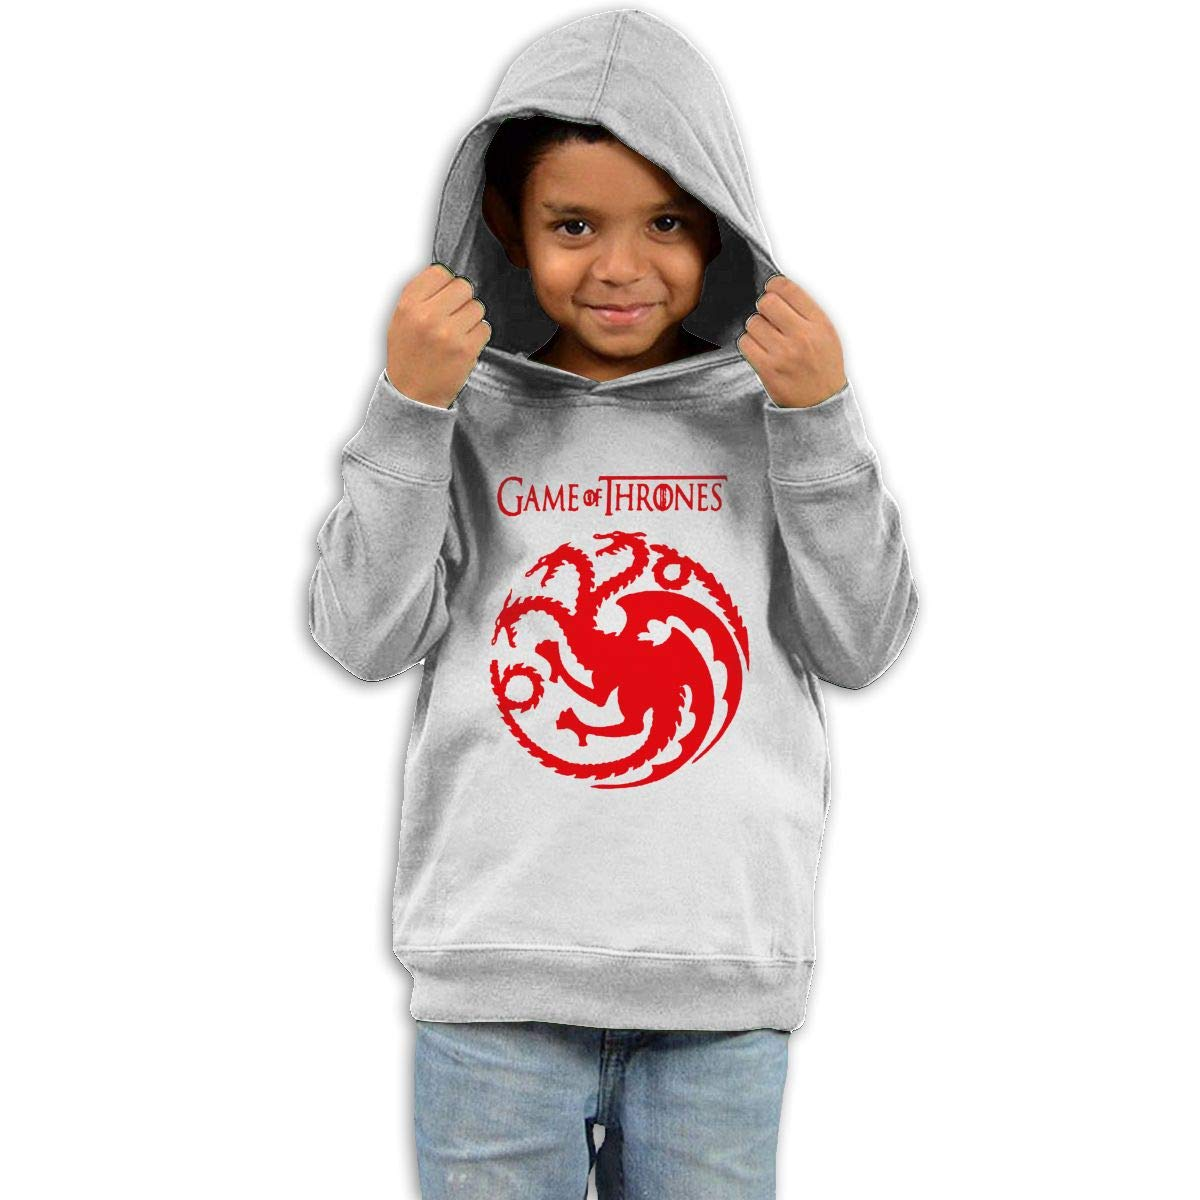 Stacy J. Payne Toddler Game Targaryen Funny Fleece41 White